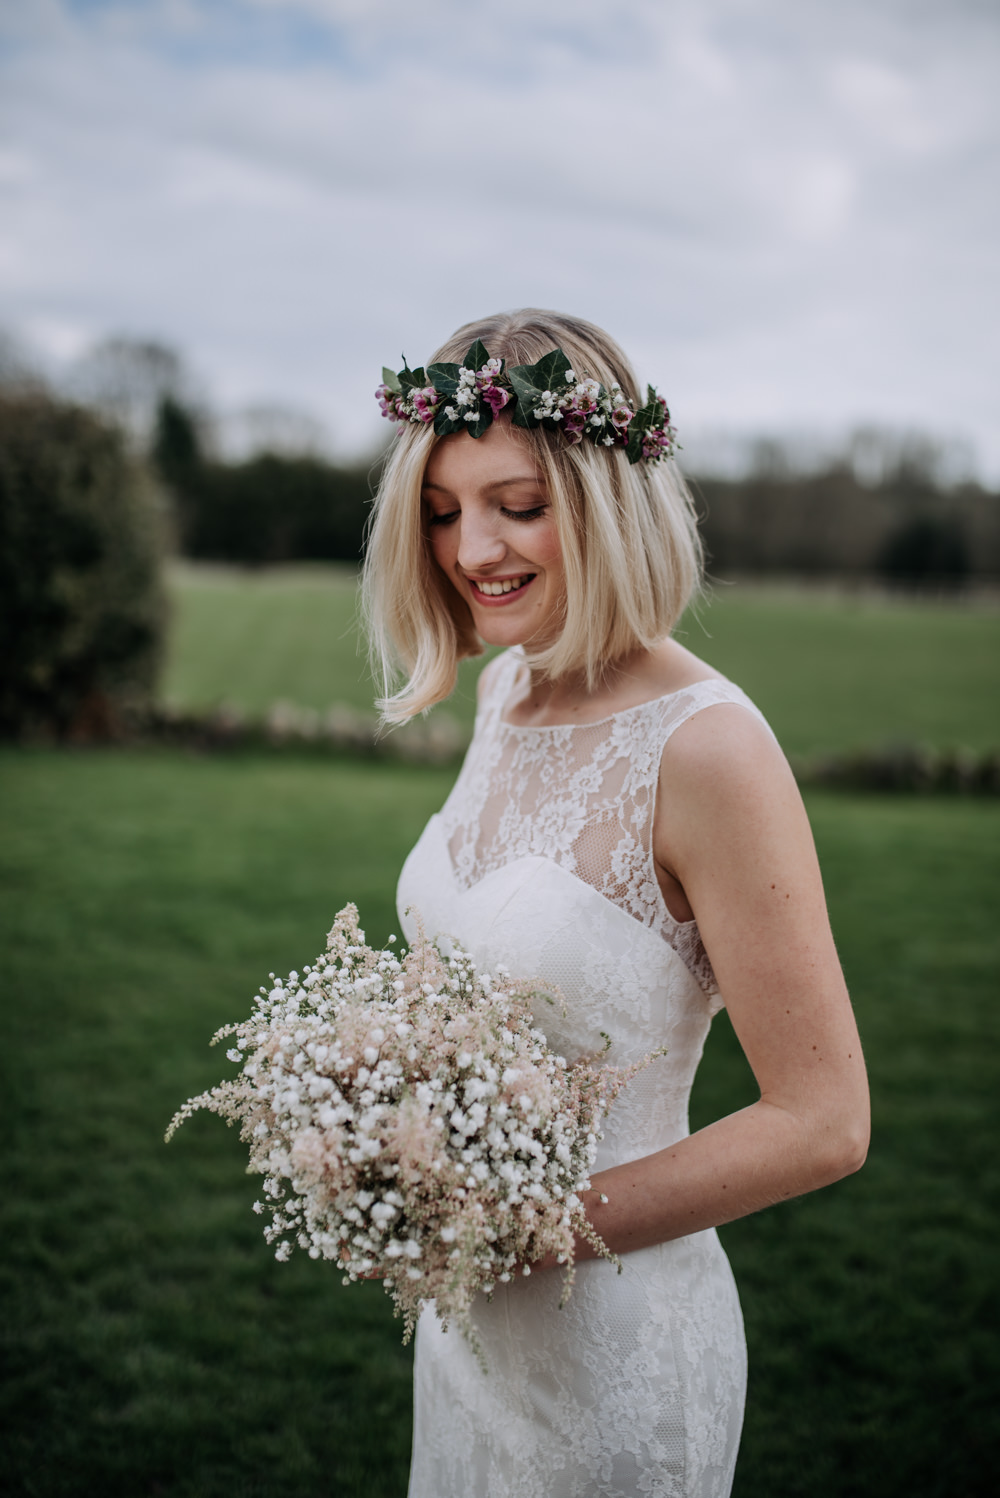 Bride Bridal Dress Gown Lace Flower Crown Short Hair Gypsophila Bouquet Astilbe Notley Tythe Barn Wedding Kazooieloki Photography